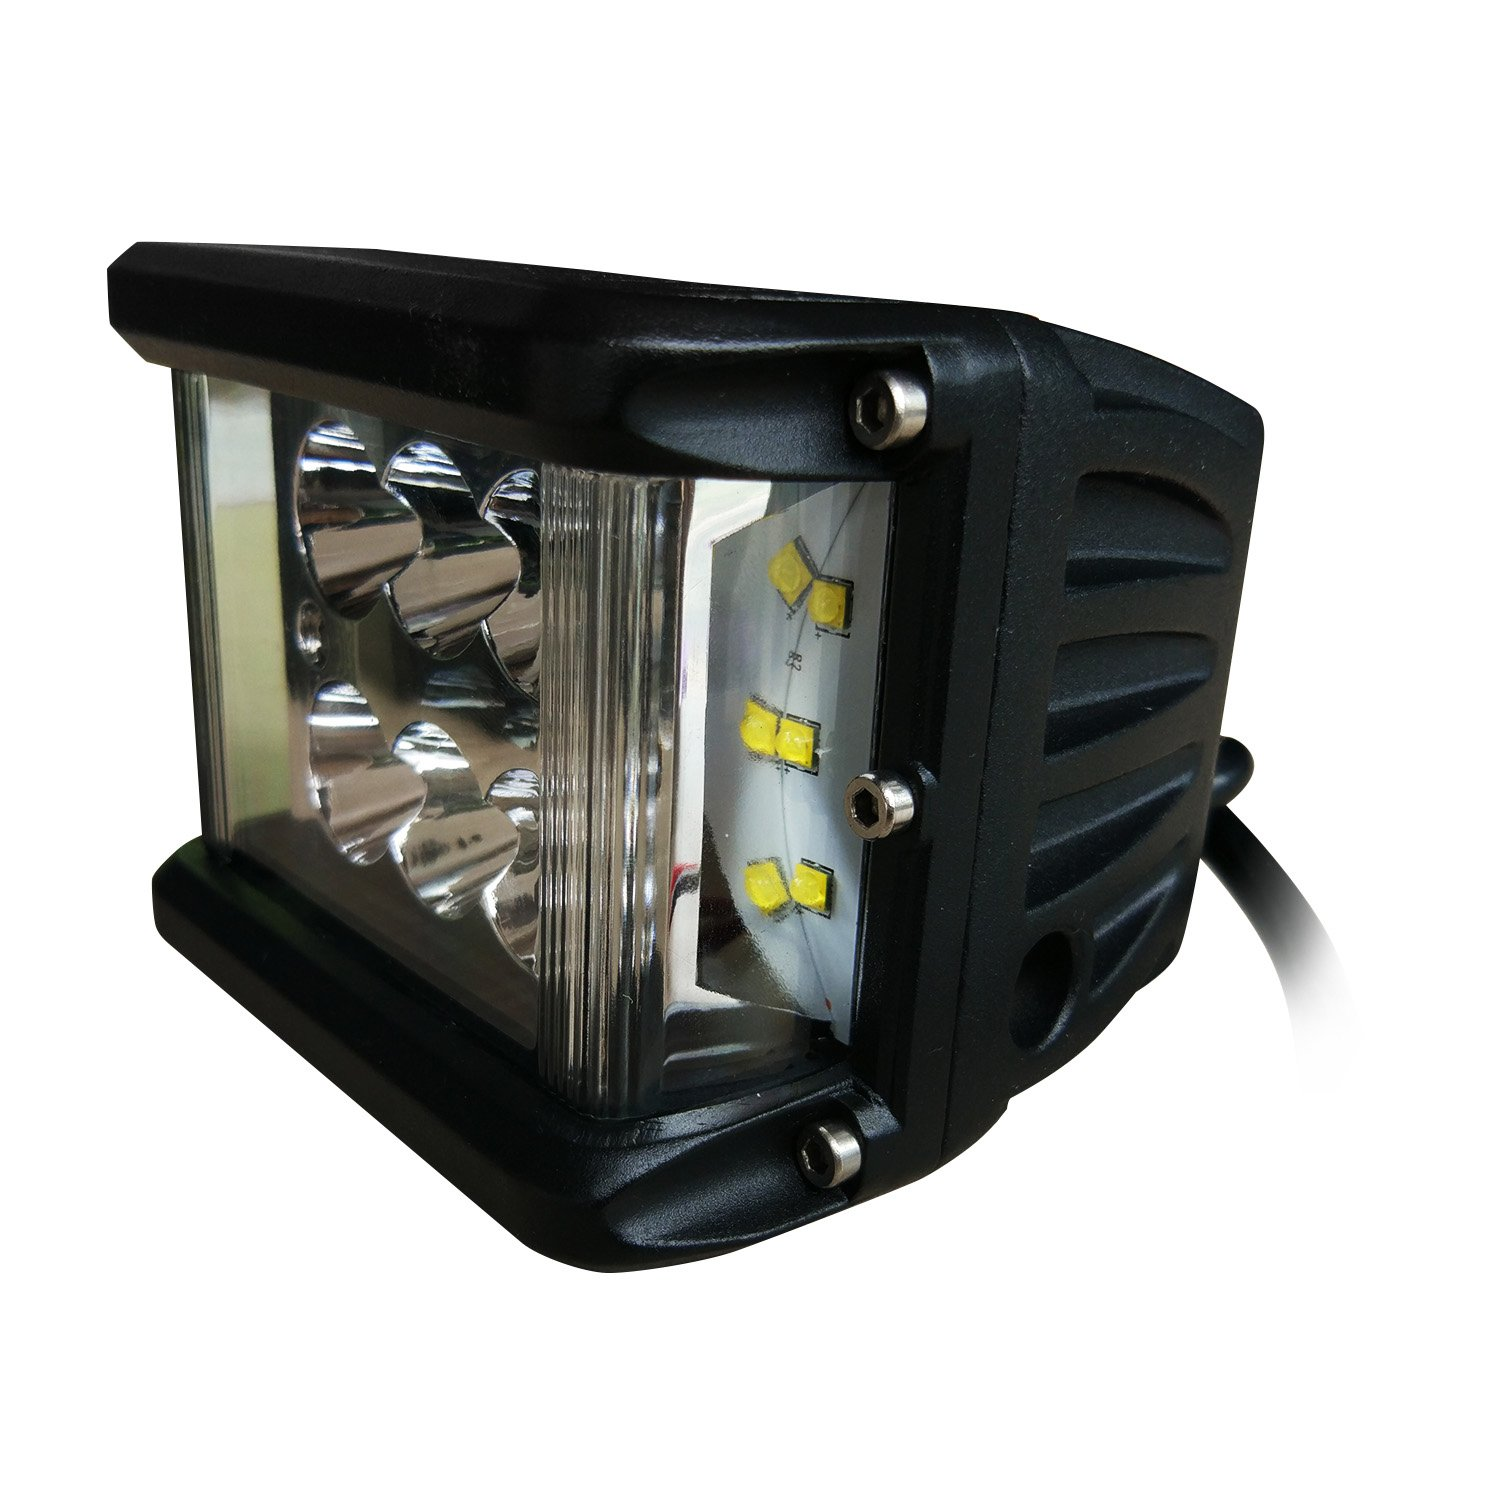 Chihein LED Pods Work Light, 4'' 60W 5100LM Floodlight Off Road Super Bright Waterproof Driving Running Lights